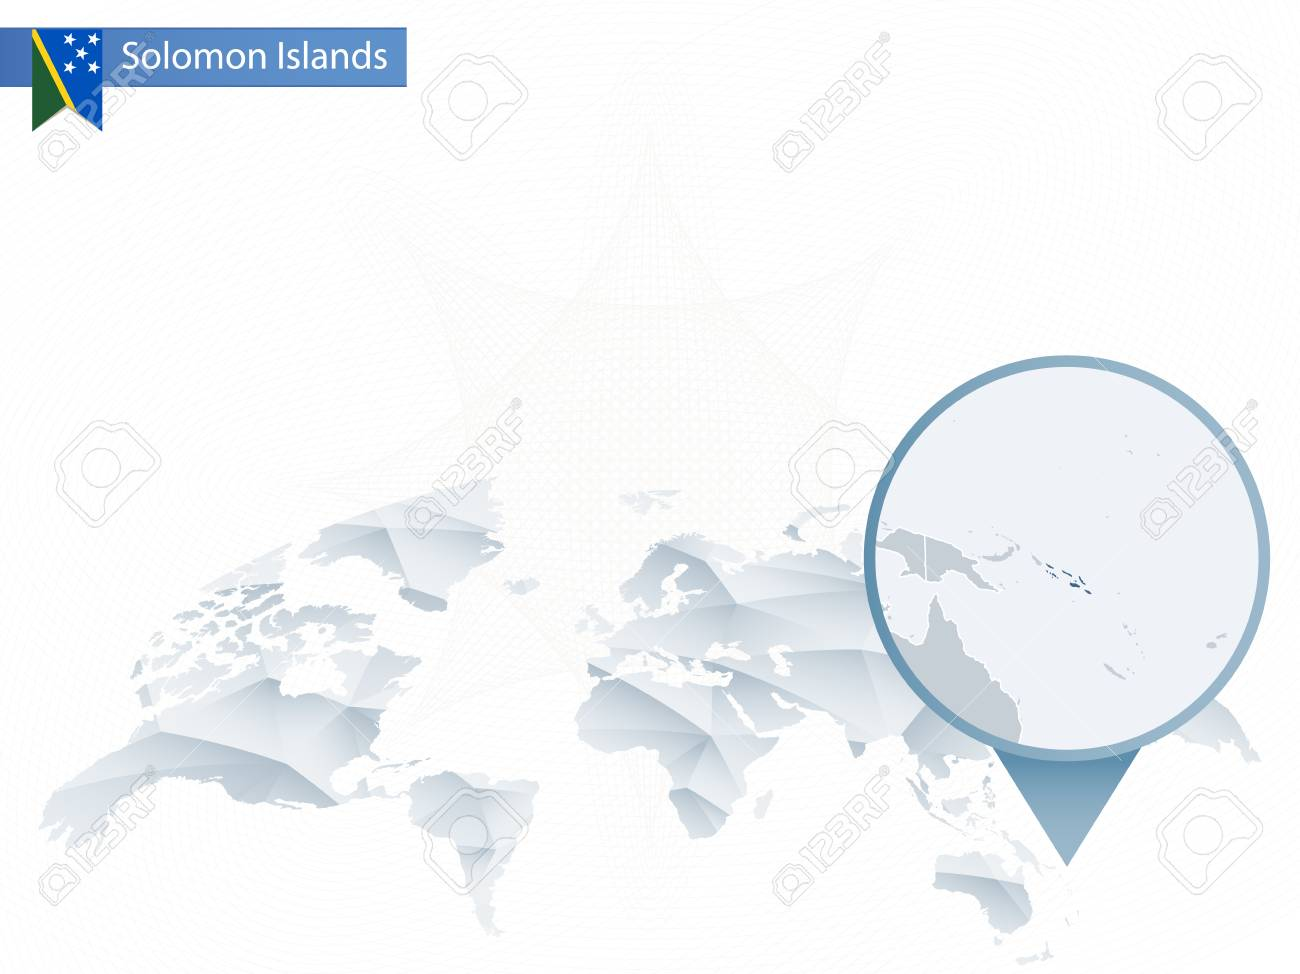 Solomon Islands World Map.Abstract Rounded World Map With Pinned Detailed Solomon Islands